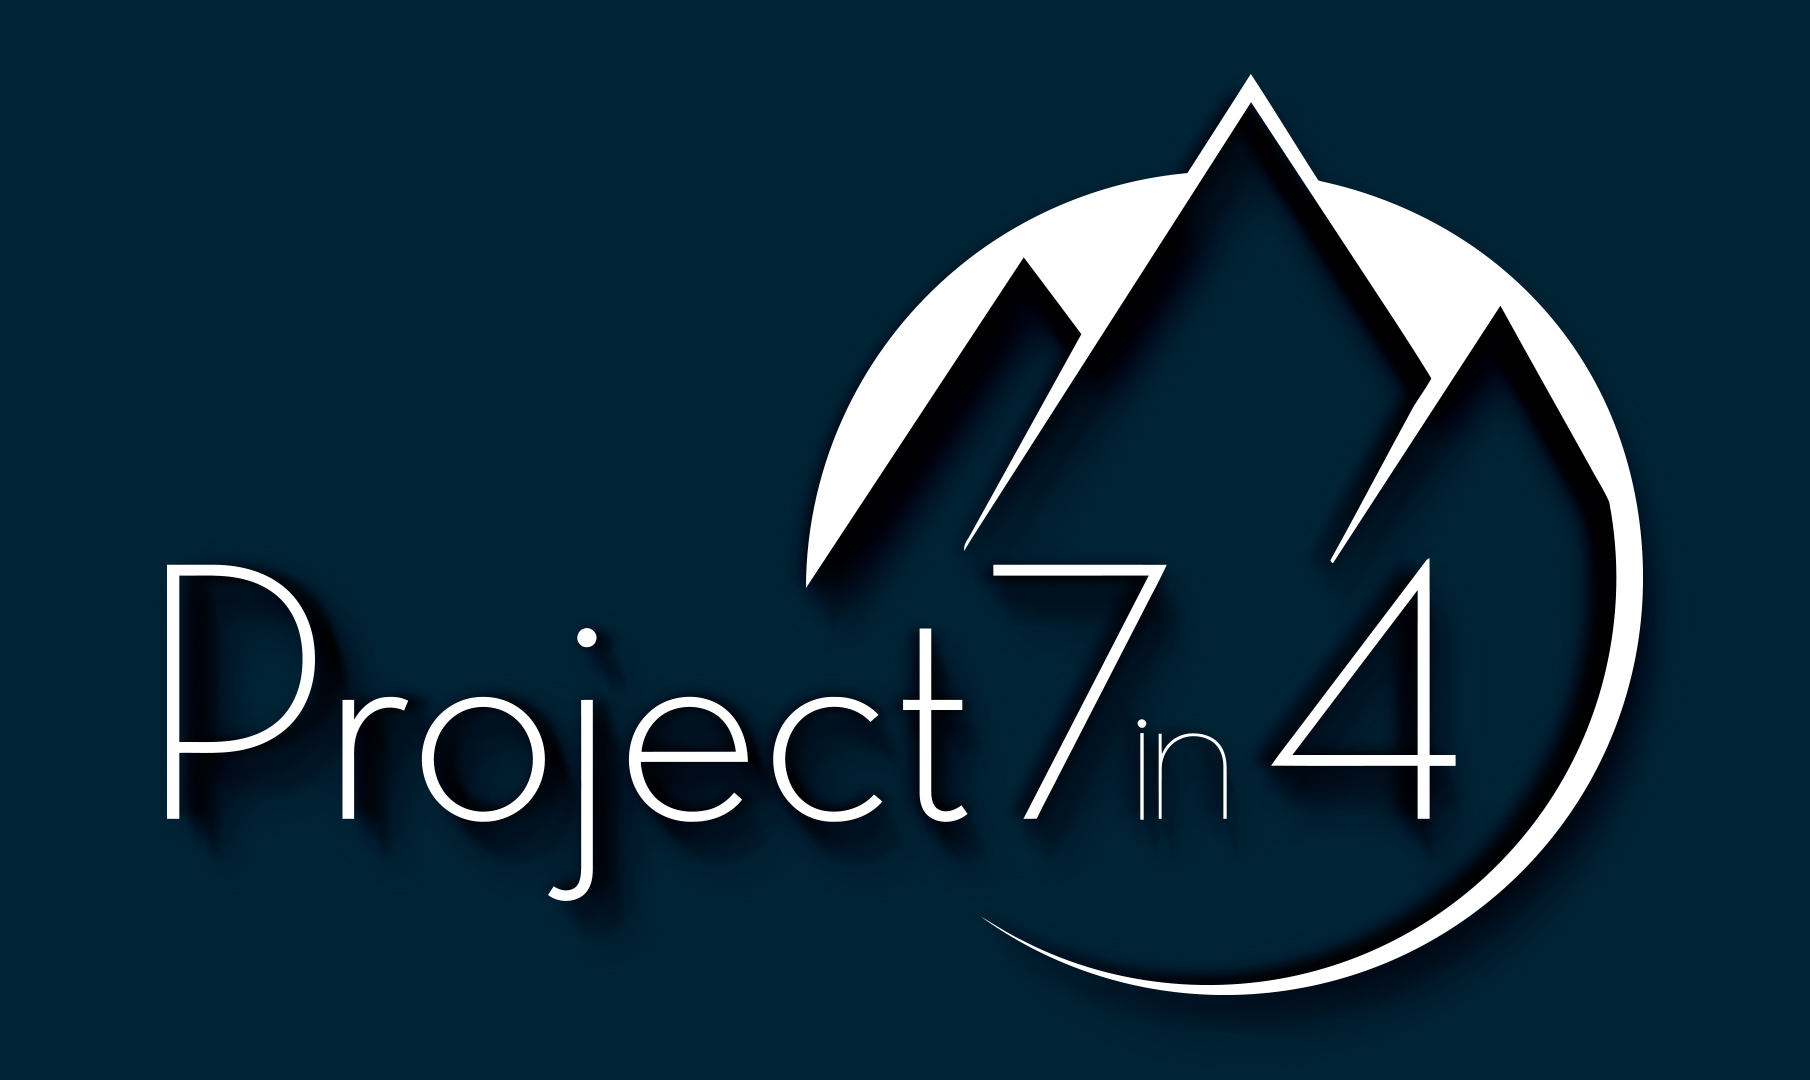 Project 7in4 - 7 Summits world speed record